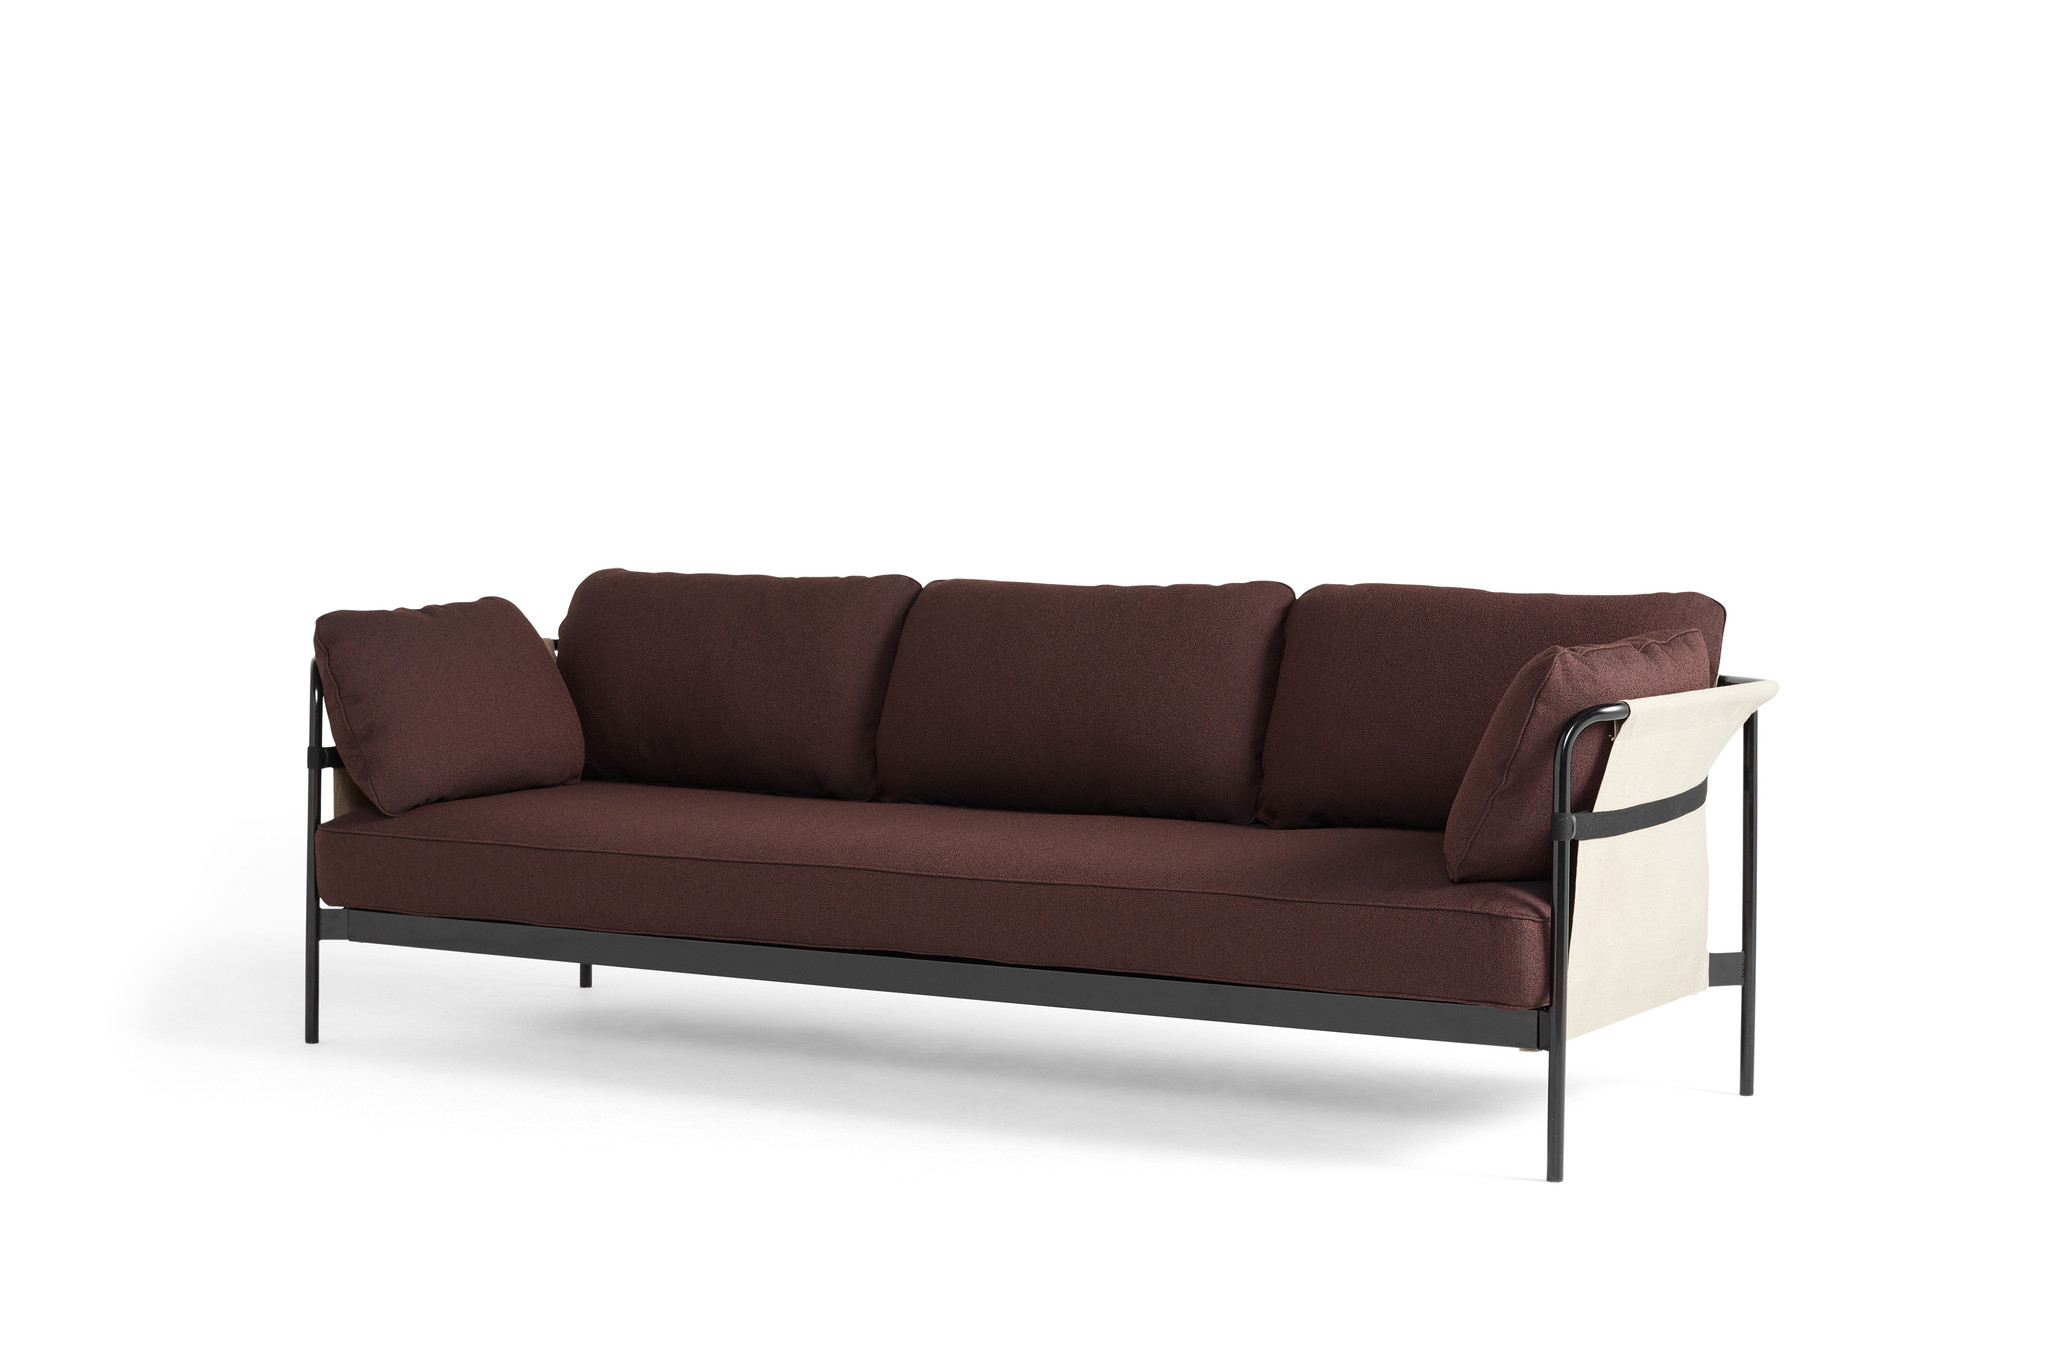 Can 3 Seater-7